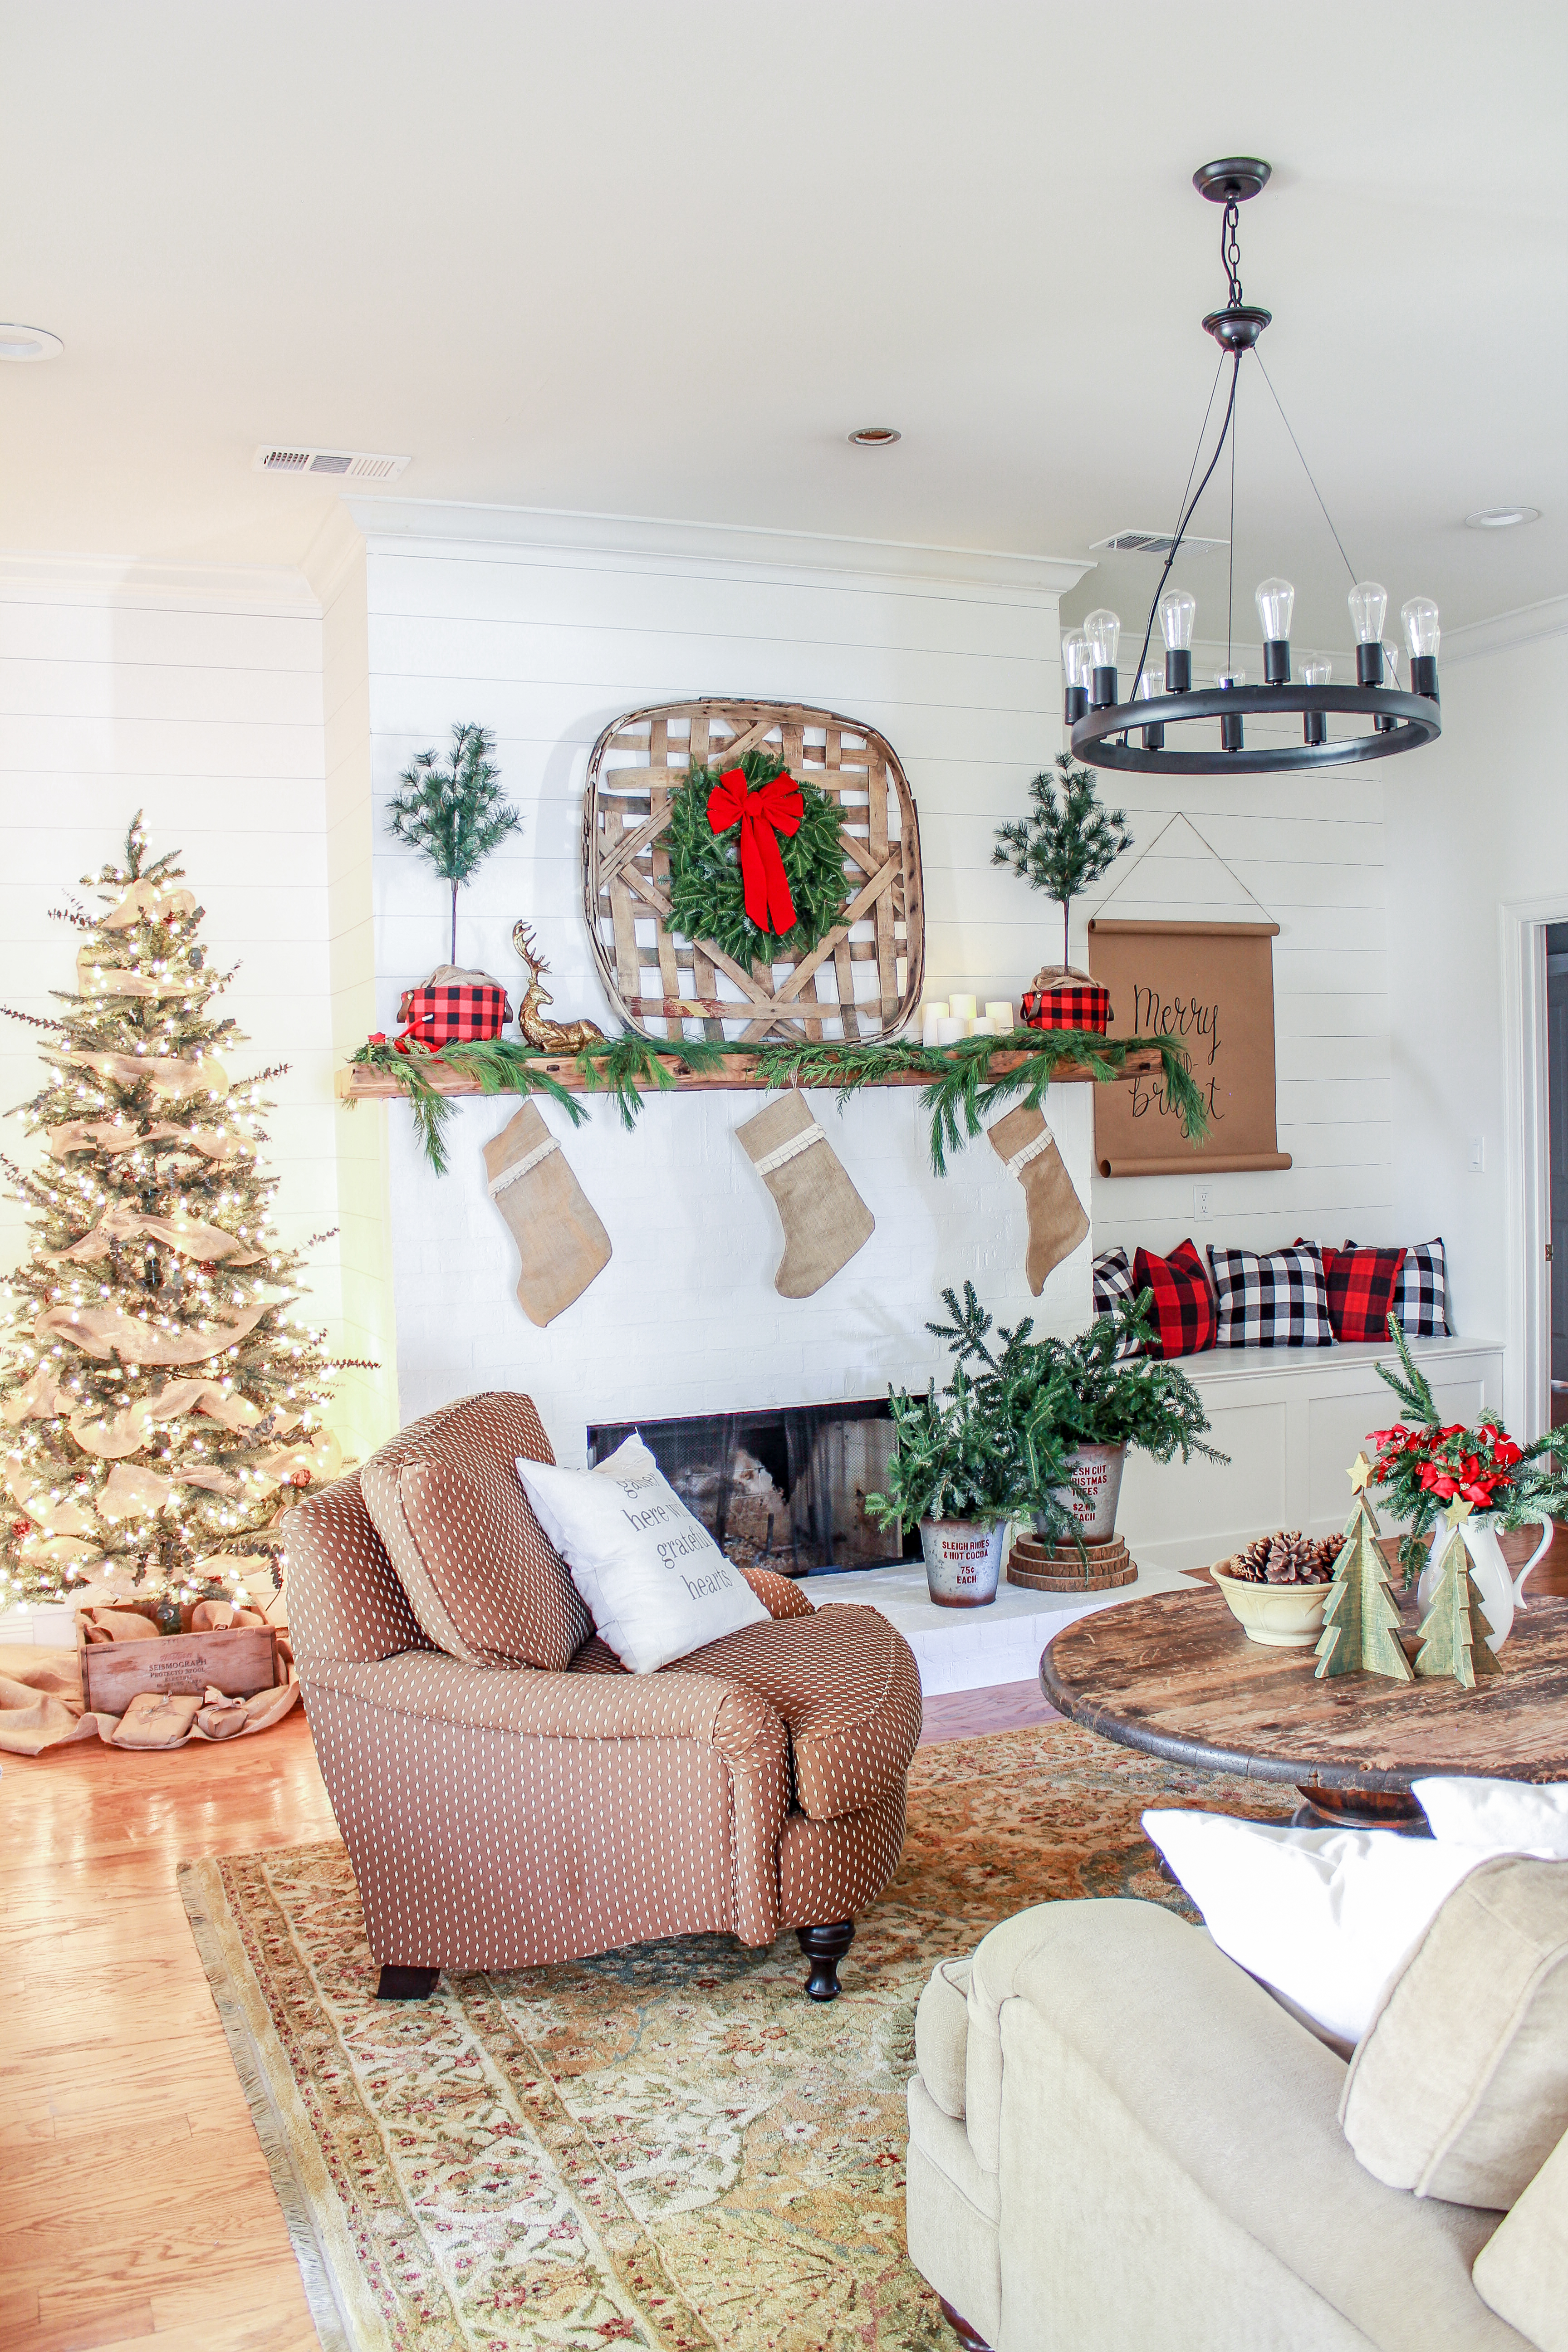 Come on in and welcome to my Christmas Home Tour 2017. I'm joining several blogger friends to give you a holiday home tour.